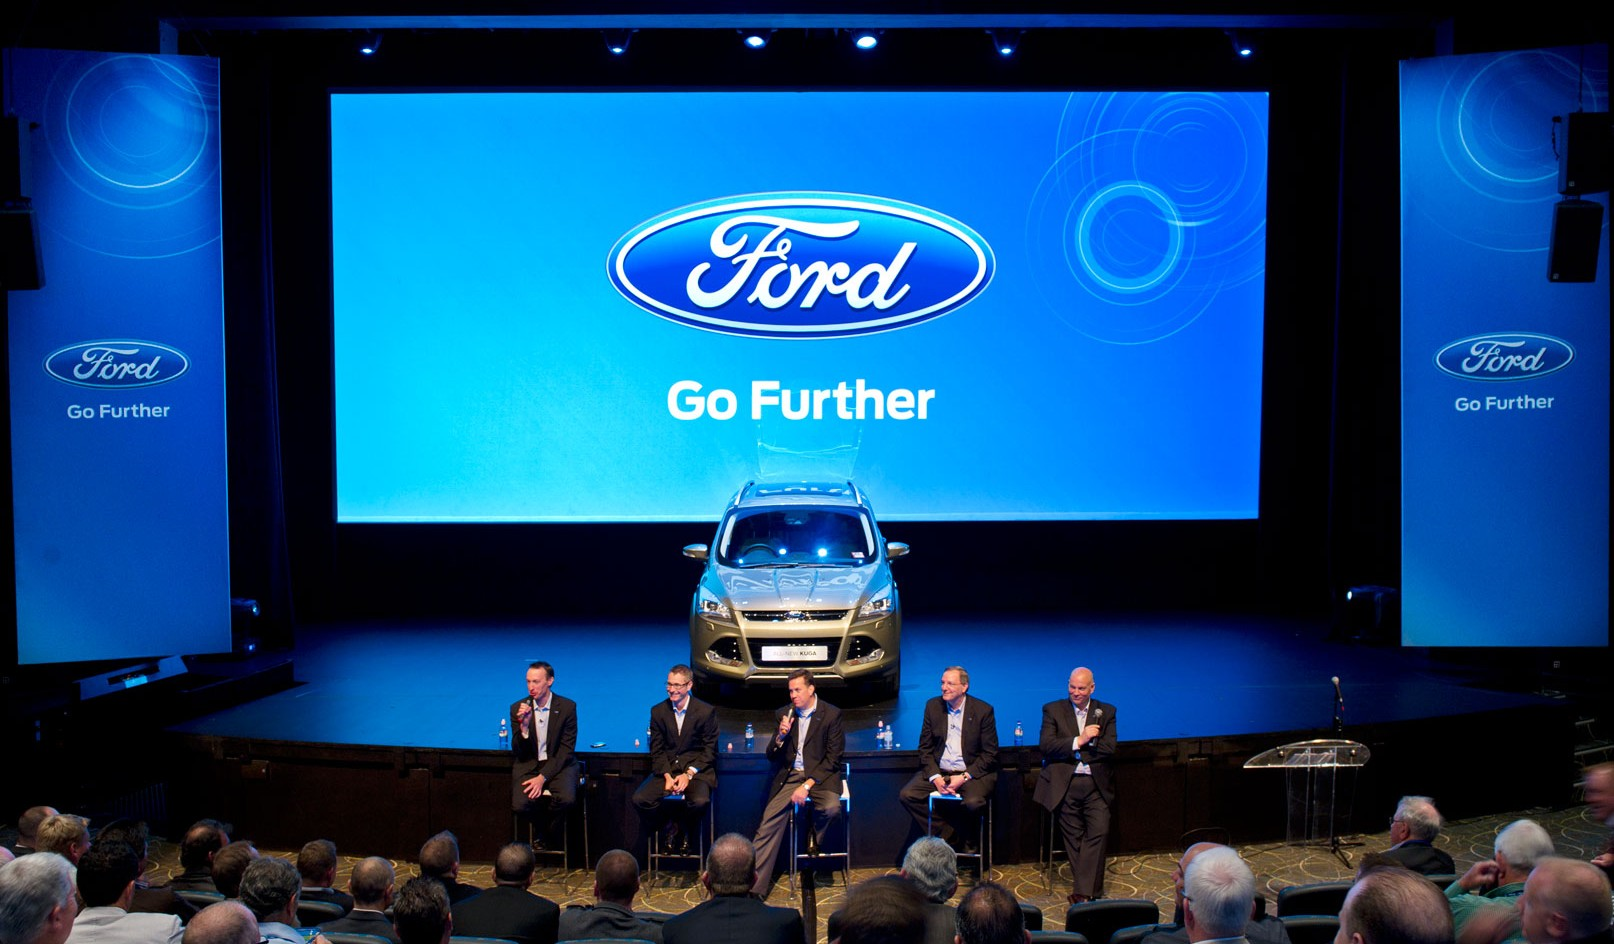 <div>Events</div><div> <a href='https://nedmeldrum.com.au/project/ford-kuga-launch/'>View Series</a></div>